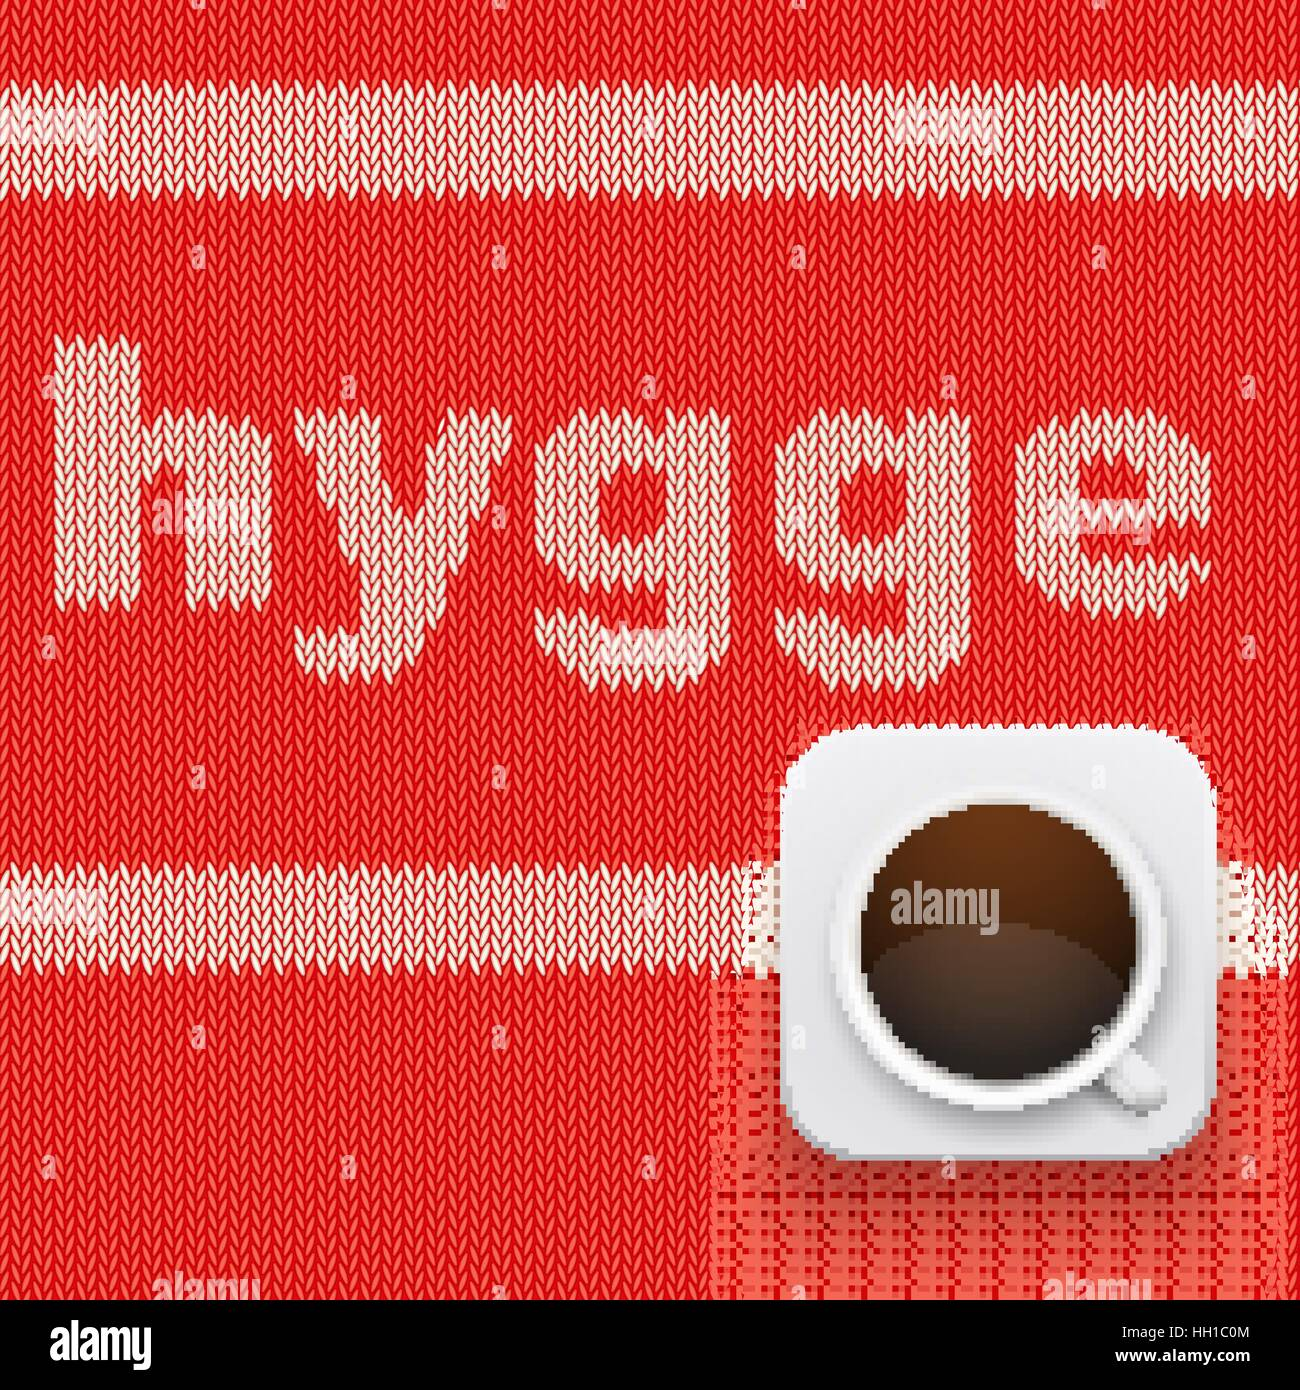 Word HYGGE on knitting texture - Stock Image